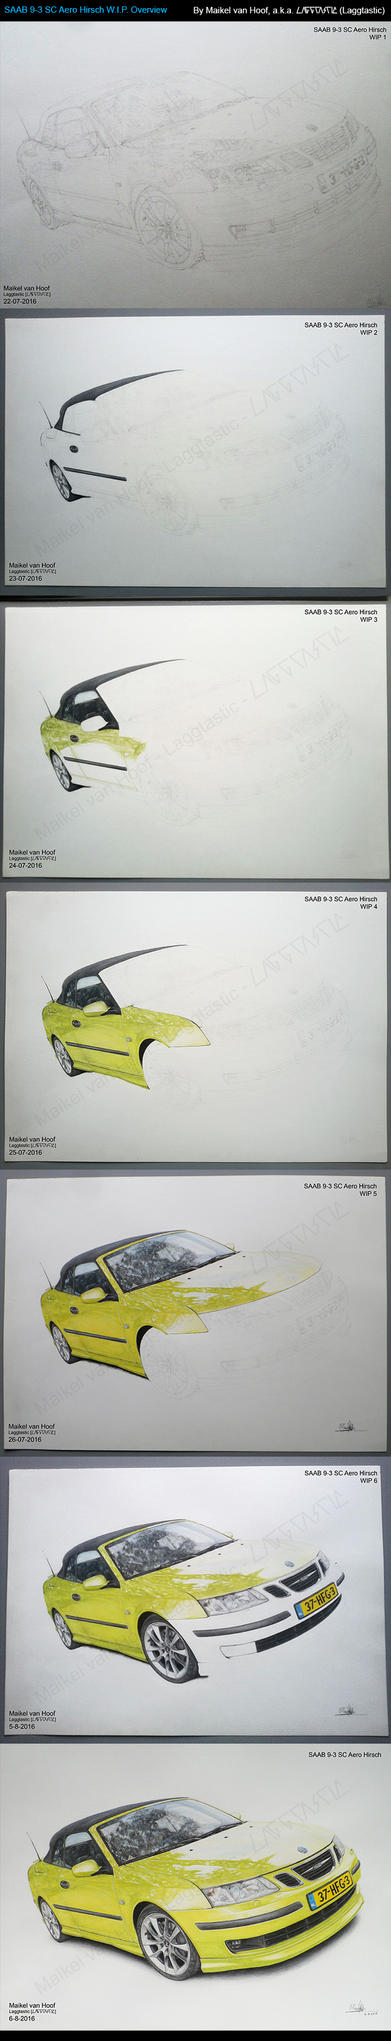 SAAB 9-3 SC Aero Hirsch WIP Overview by Laggtastic